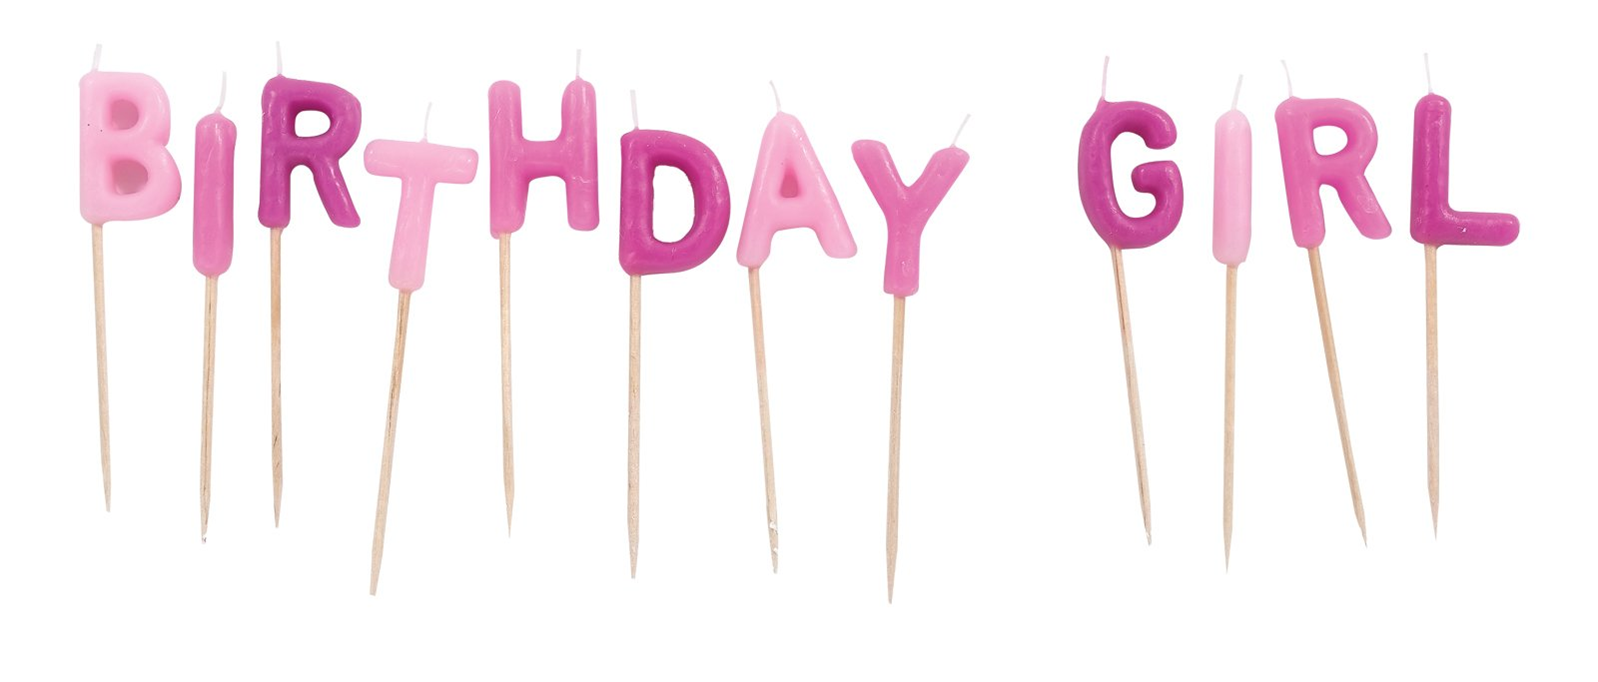 Clipart Collection Birthday Candles Png image #31043